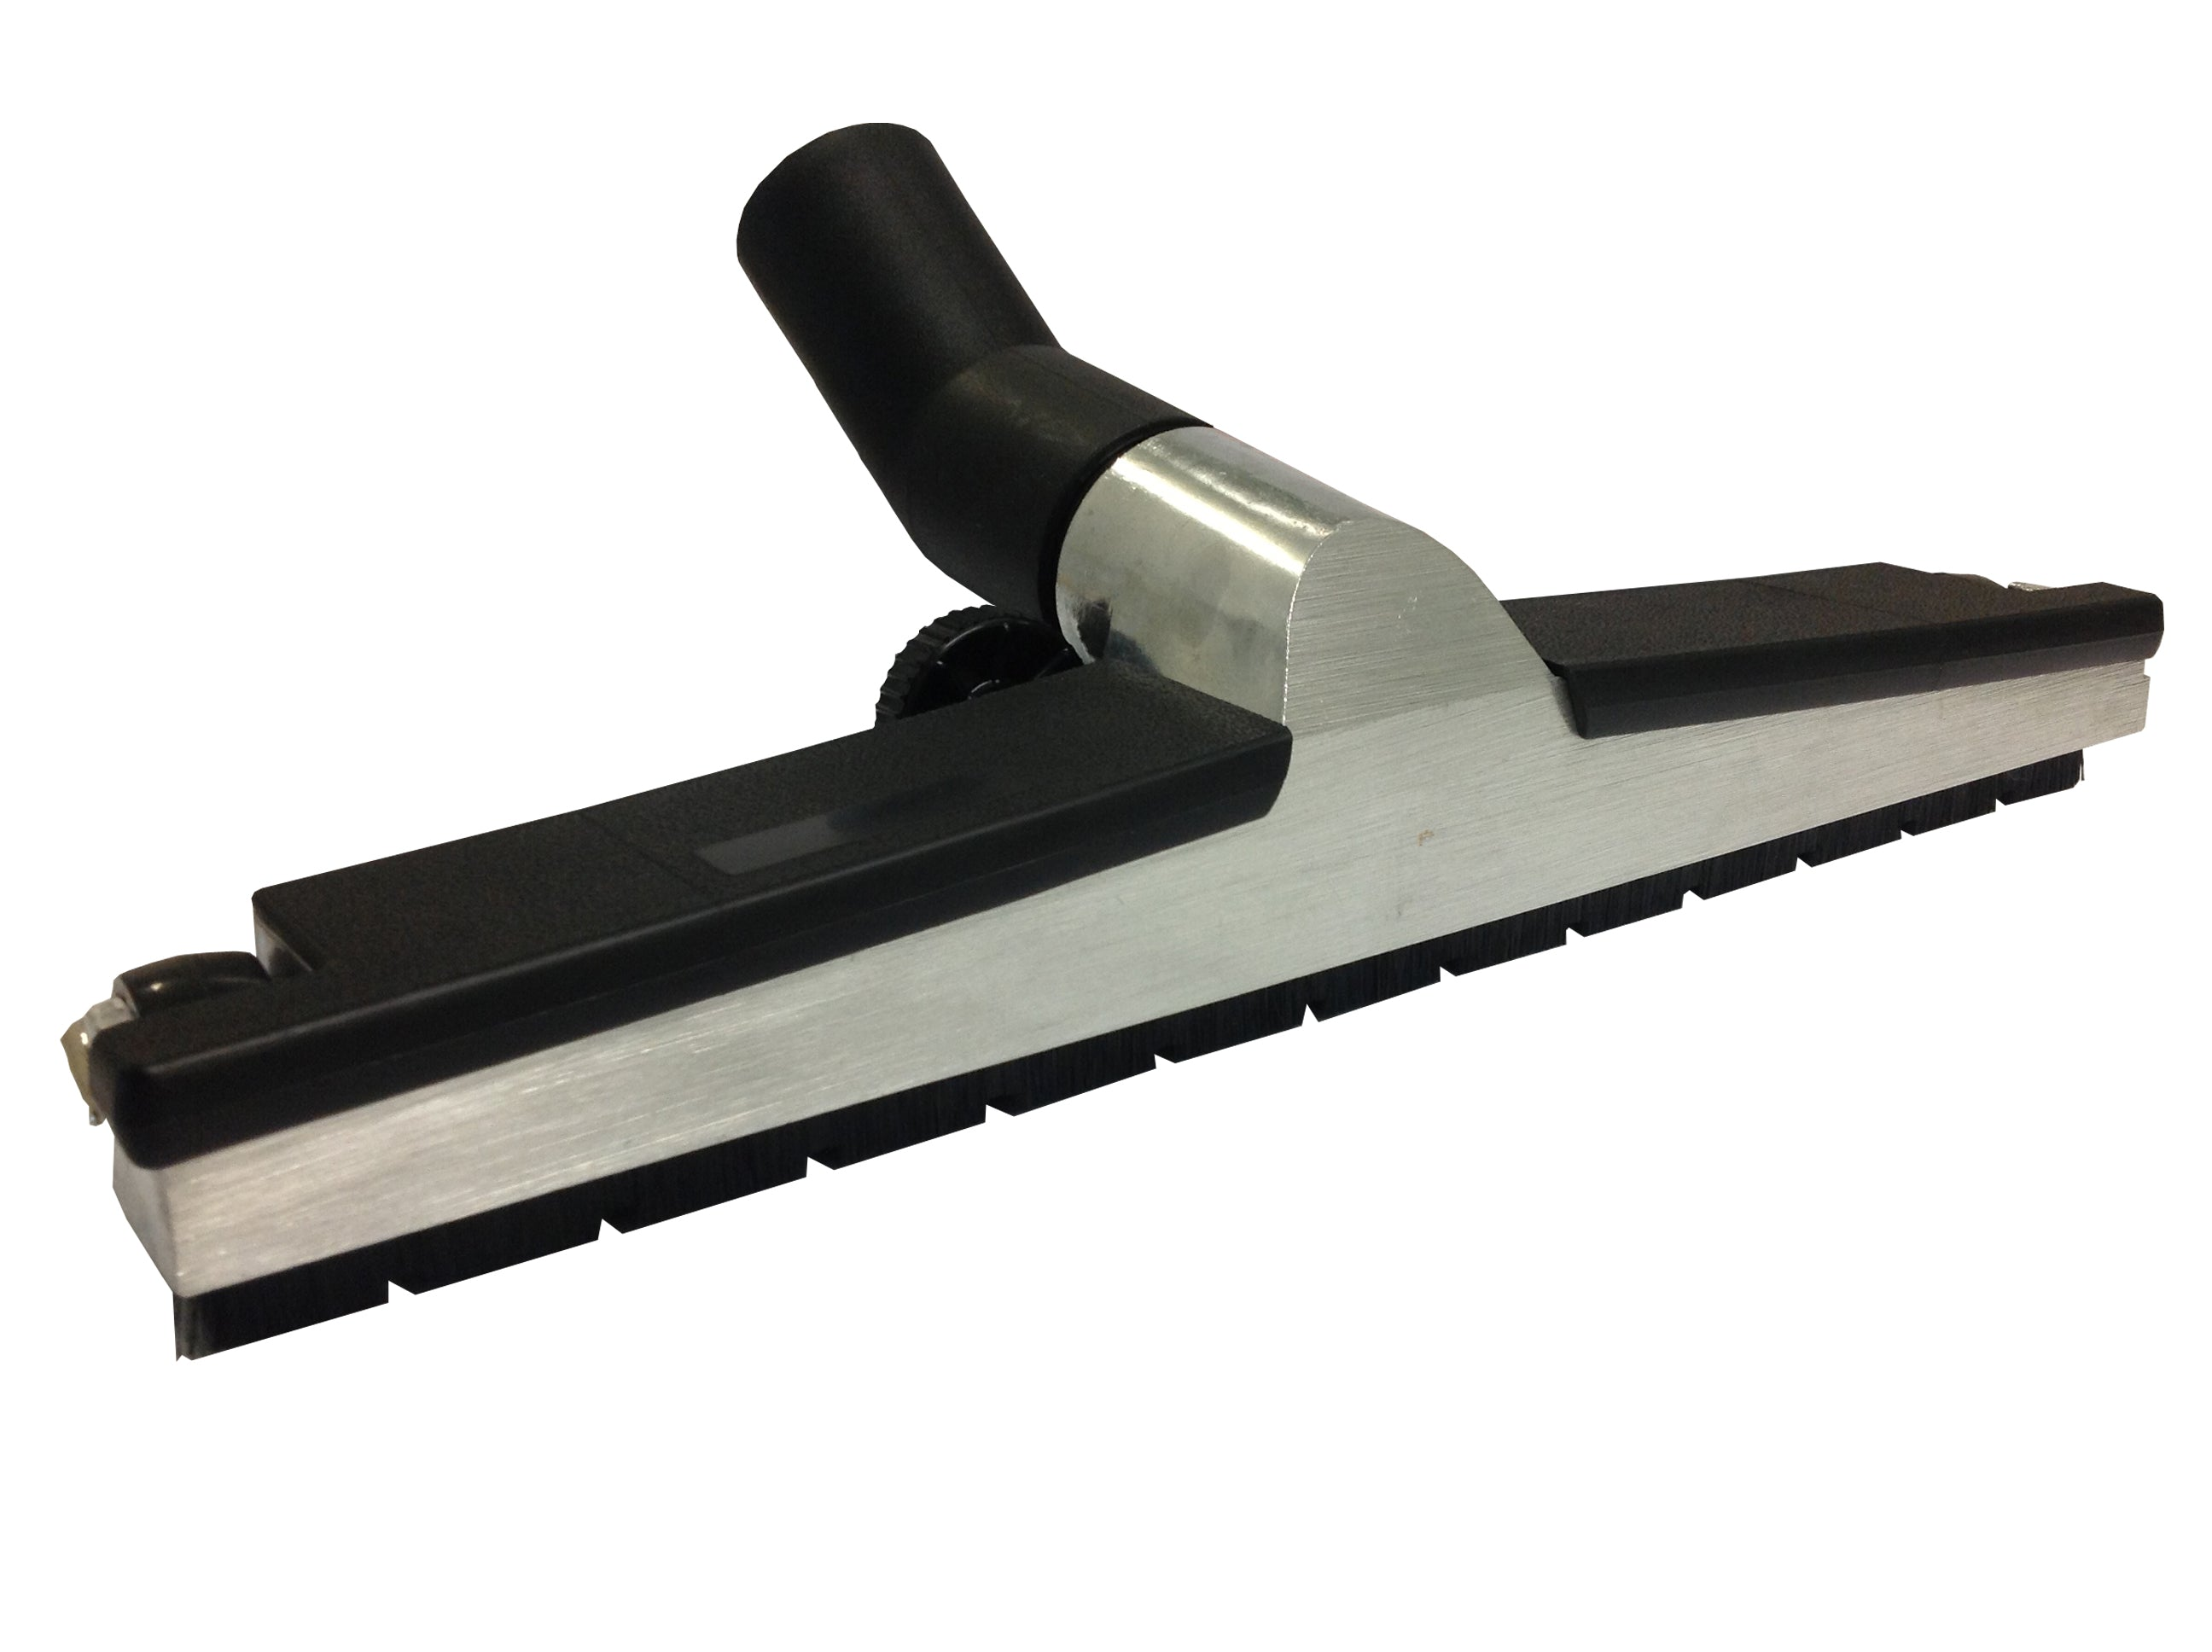 WESSEL WERK GRD450 BRUSH FLOOR TOOL 35MM X 450MM WIDE - ALUMINIUM/BLACK